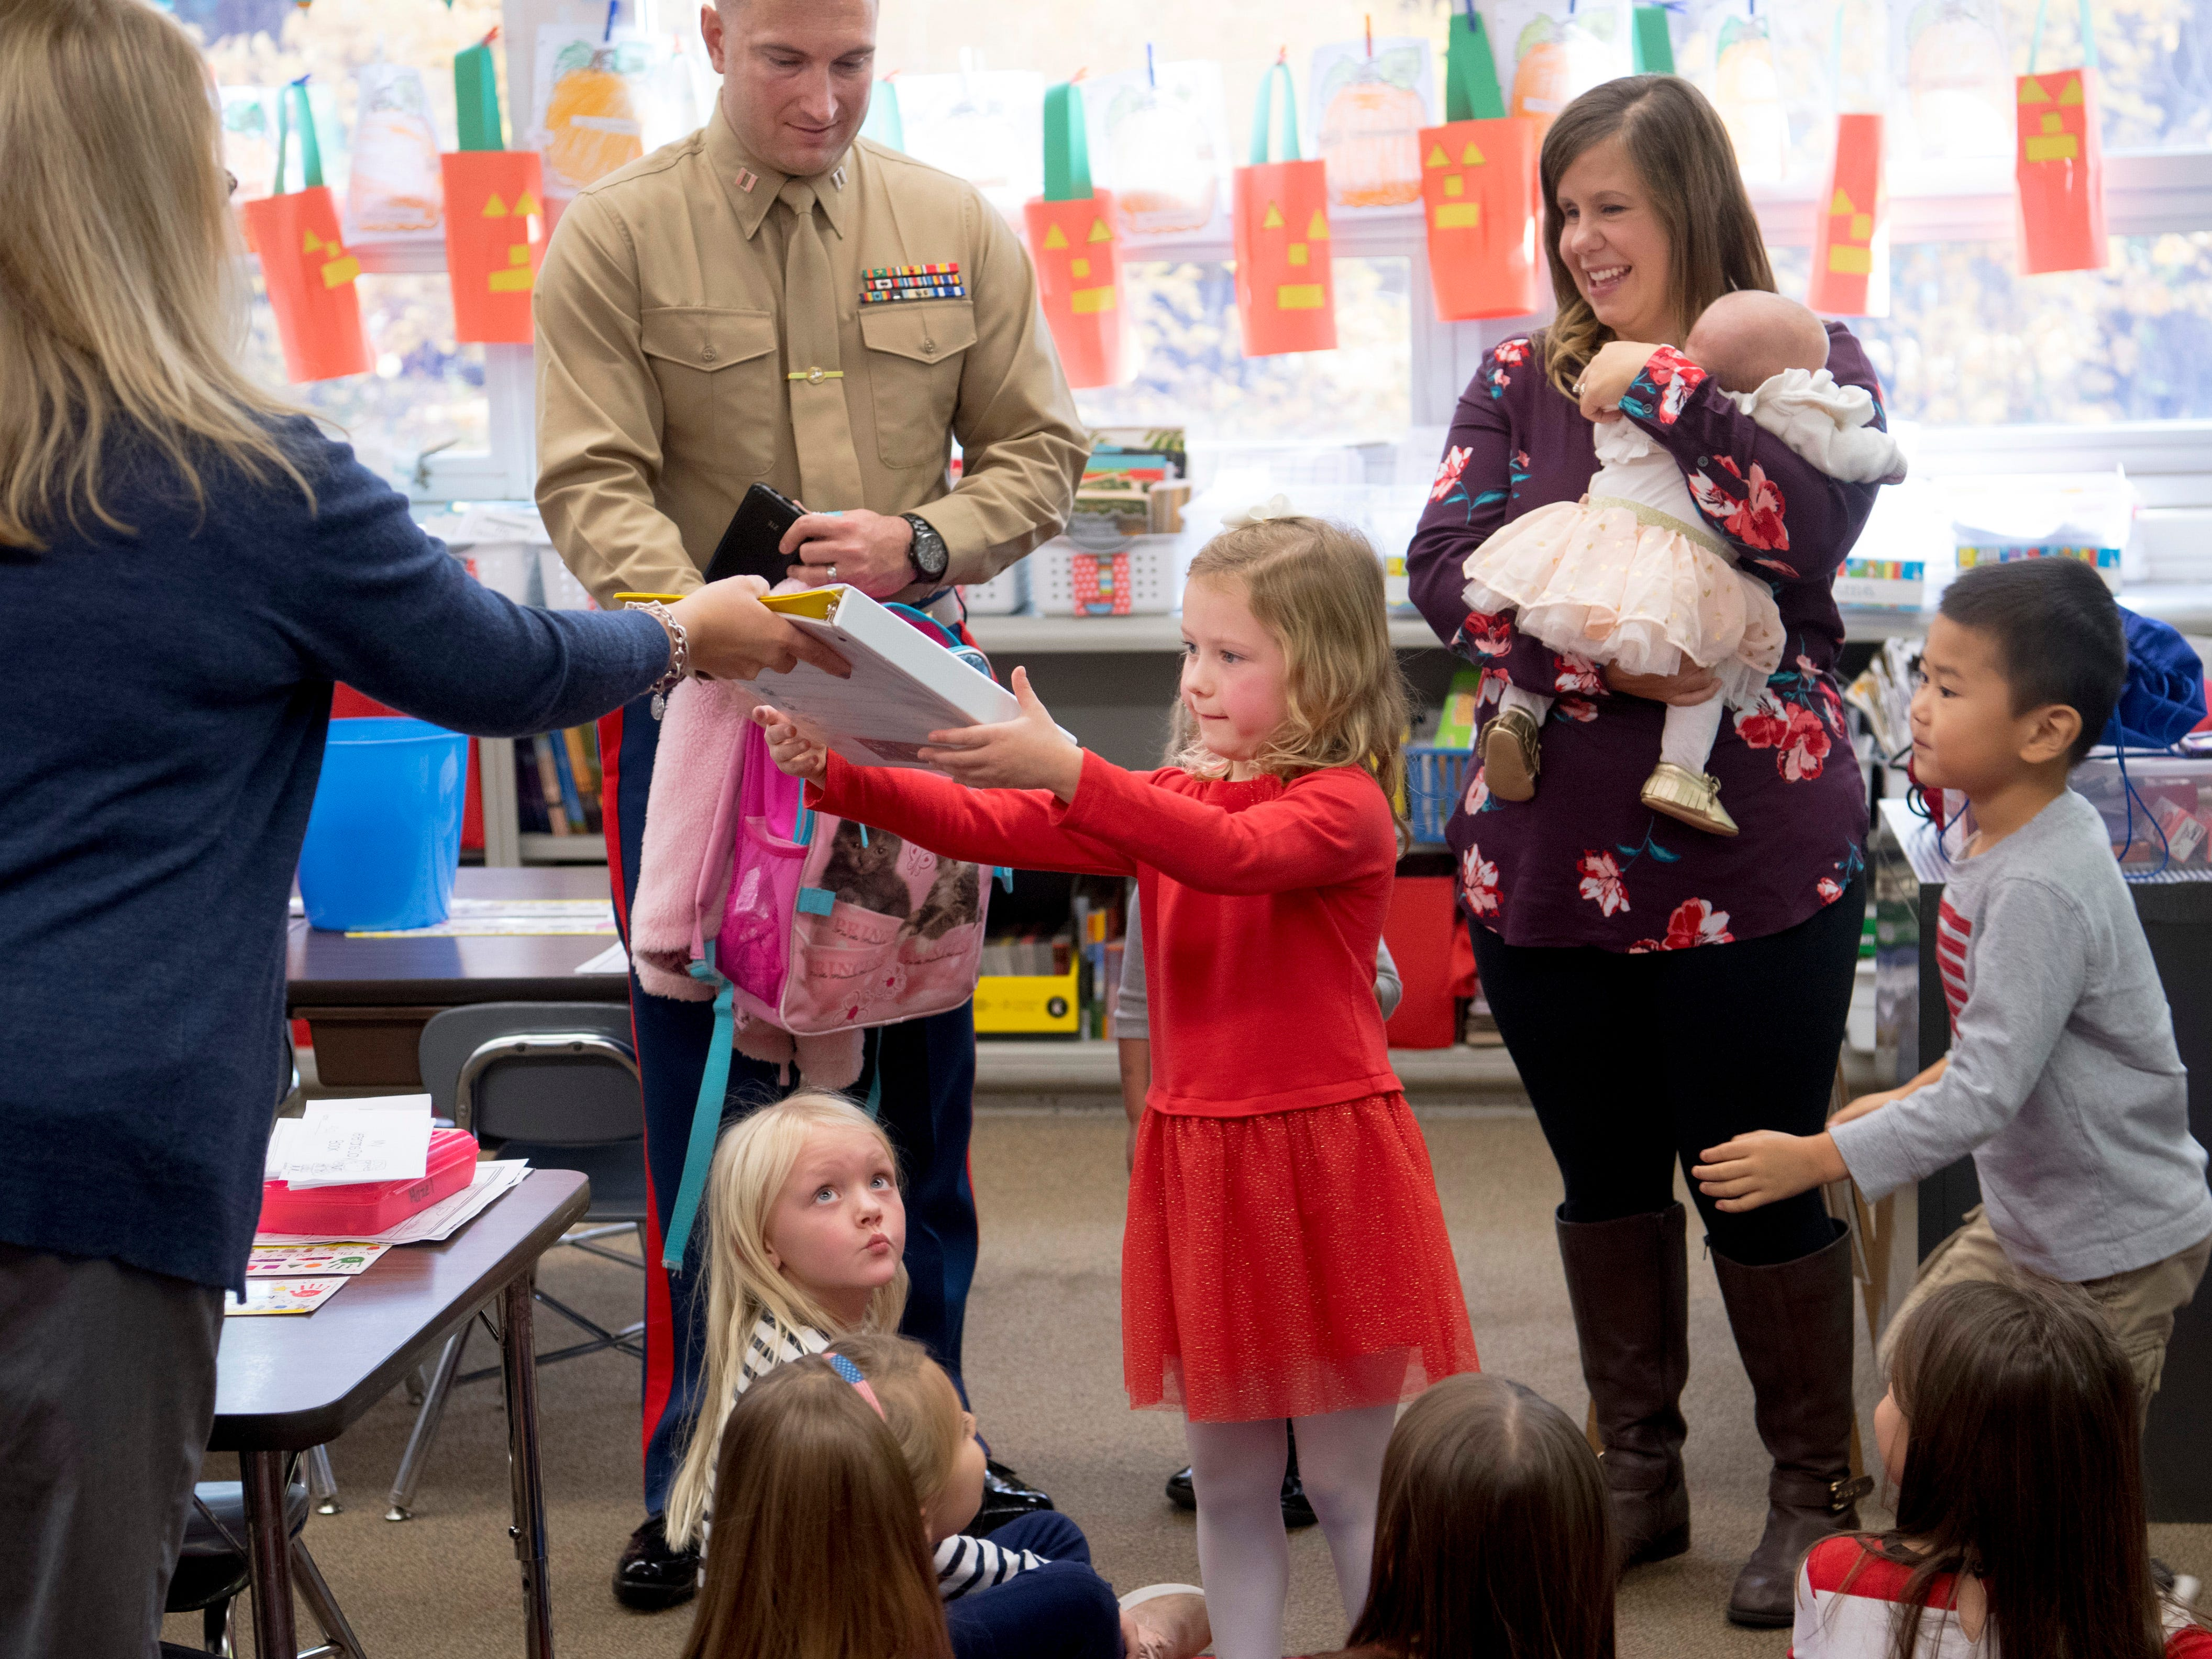 Eliana Marzec, 5, receives her homework from her kindergarten teacher before heading home for the weekend Friday morning. Eliana hadn't seen her father, Capt. Ryan Marzec, upper left, since he deployed to Afghanistan with the Marine Corps Reserve January 1, 2018. Also pictured are mom, Katie, and 7-week-old sister Hailey.